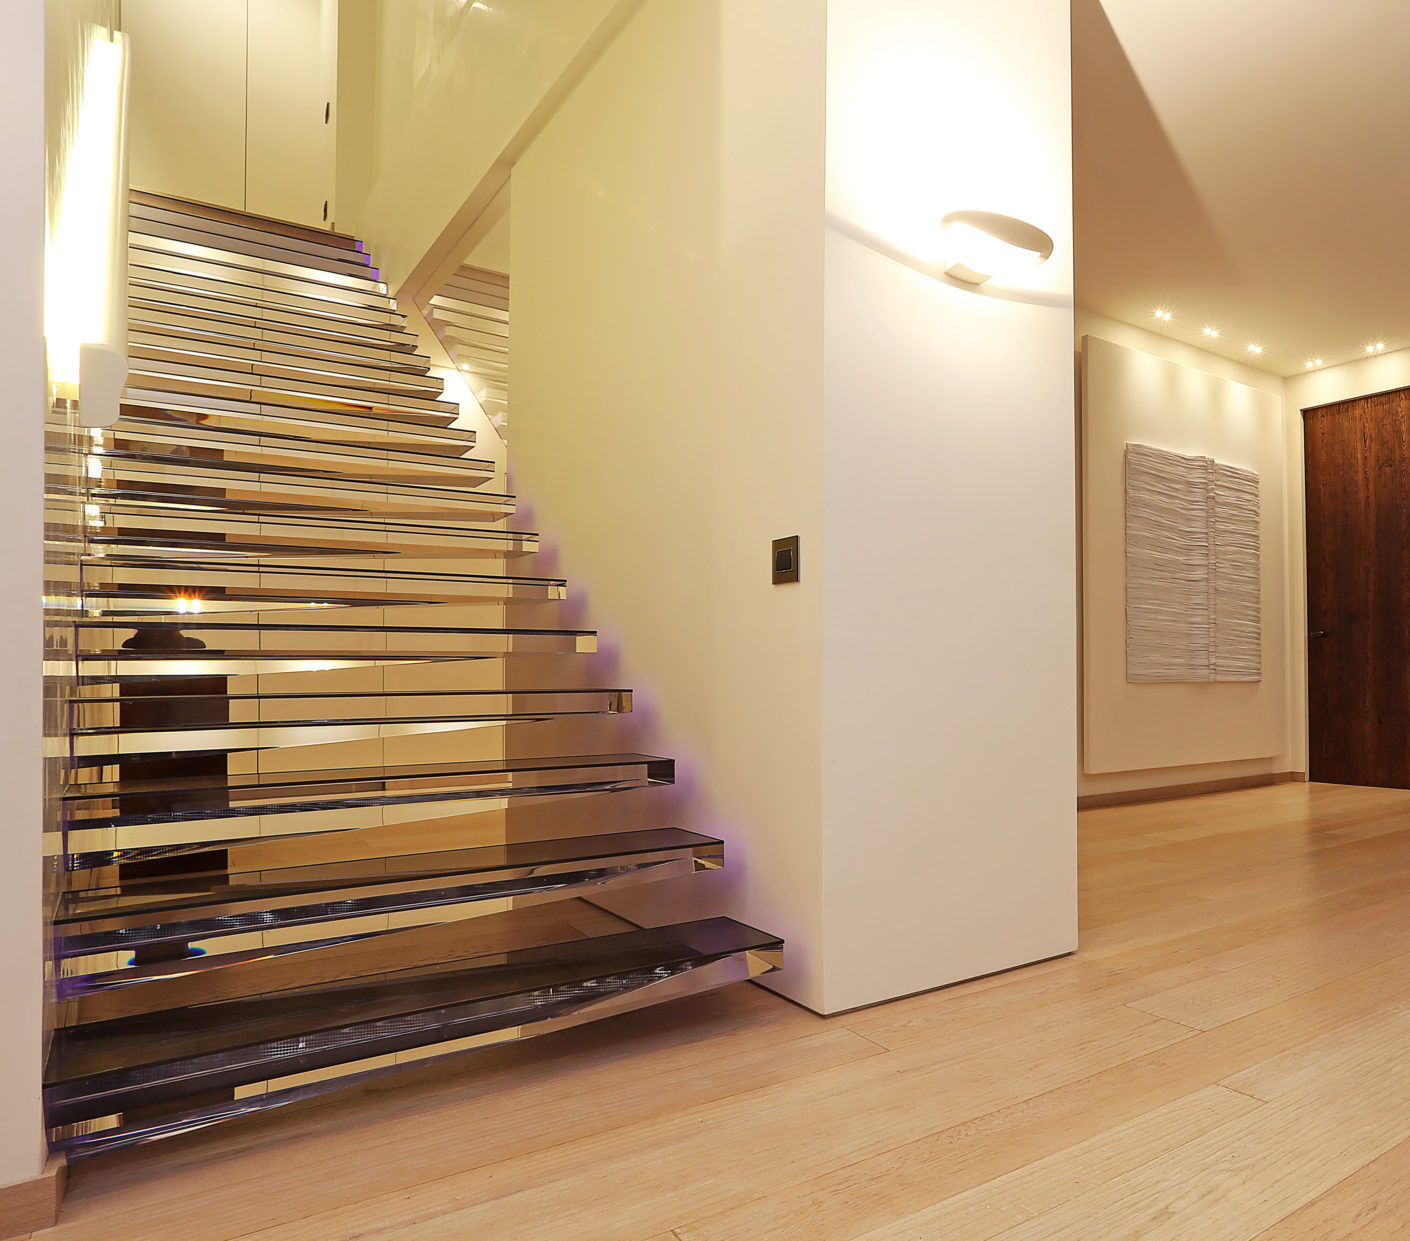 Even if the steps seem fragile, they are very sturdy underfoot: The acrylic blocks are anchored firmly in the wall by means of bolts and steel clamps.